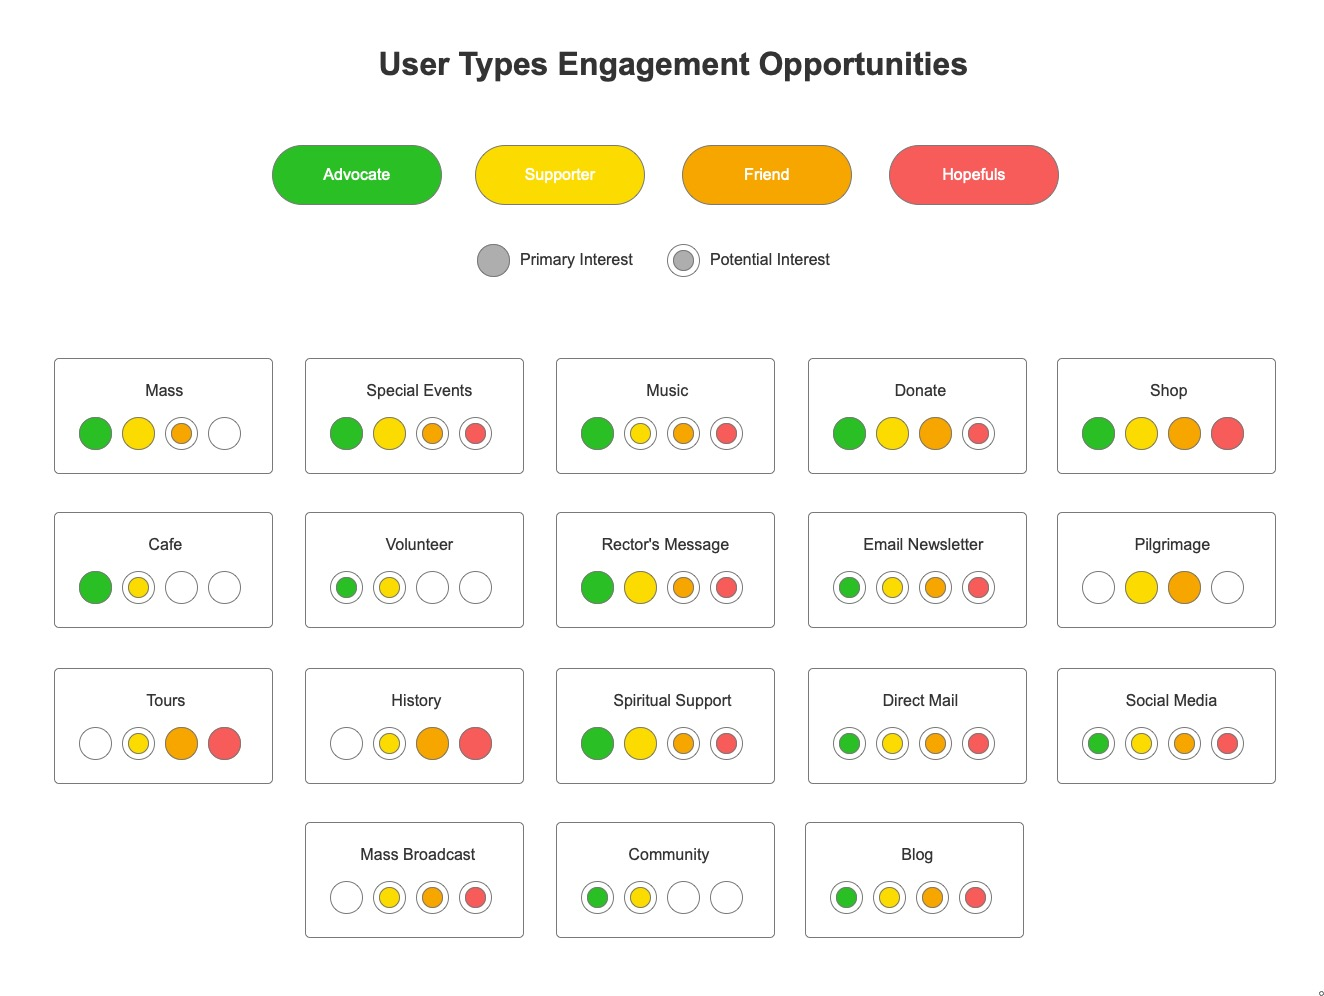 User types engagement opportunities